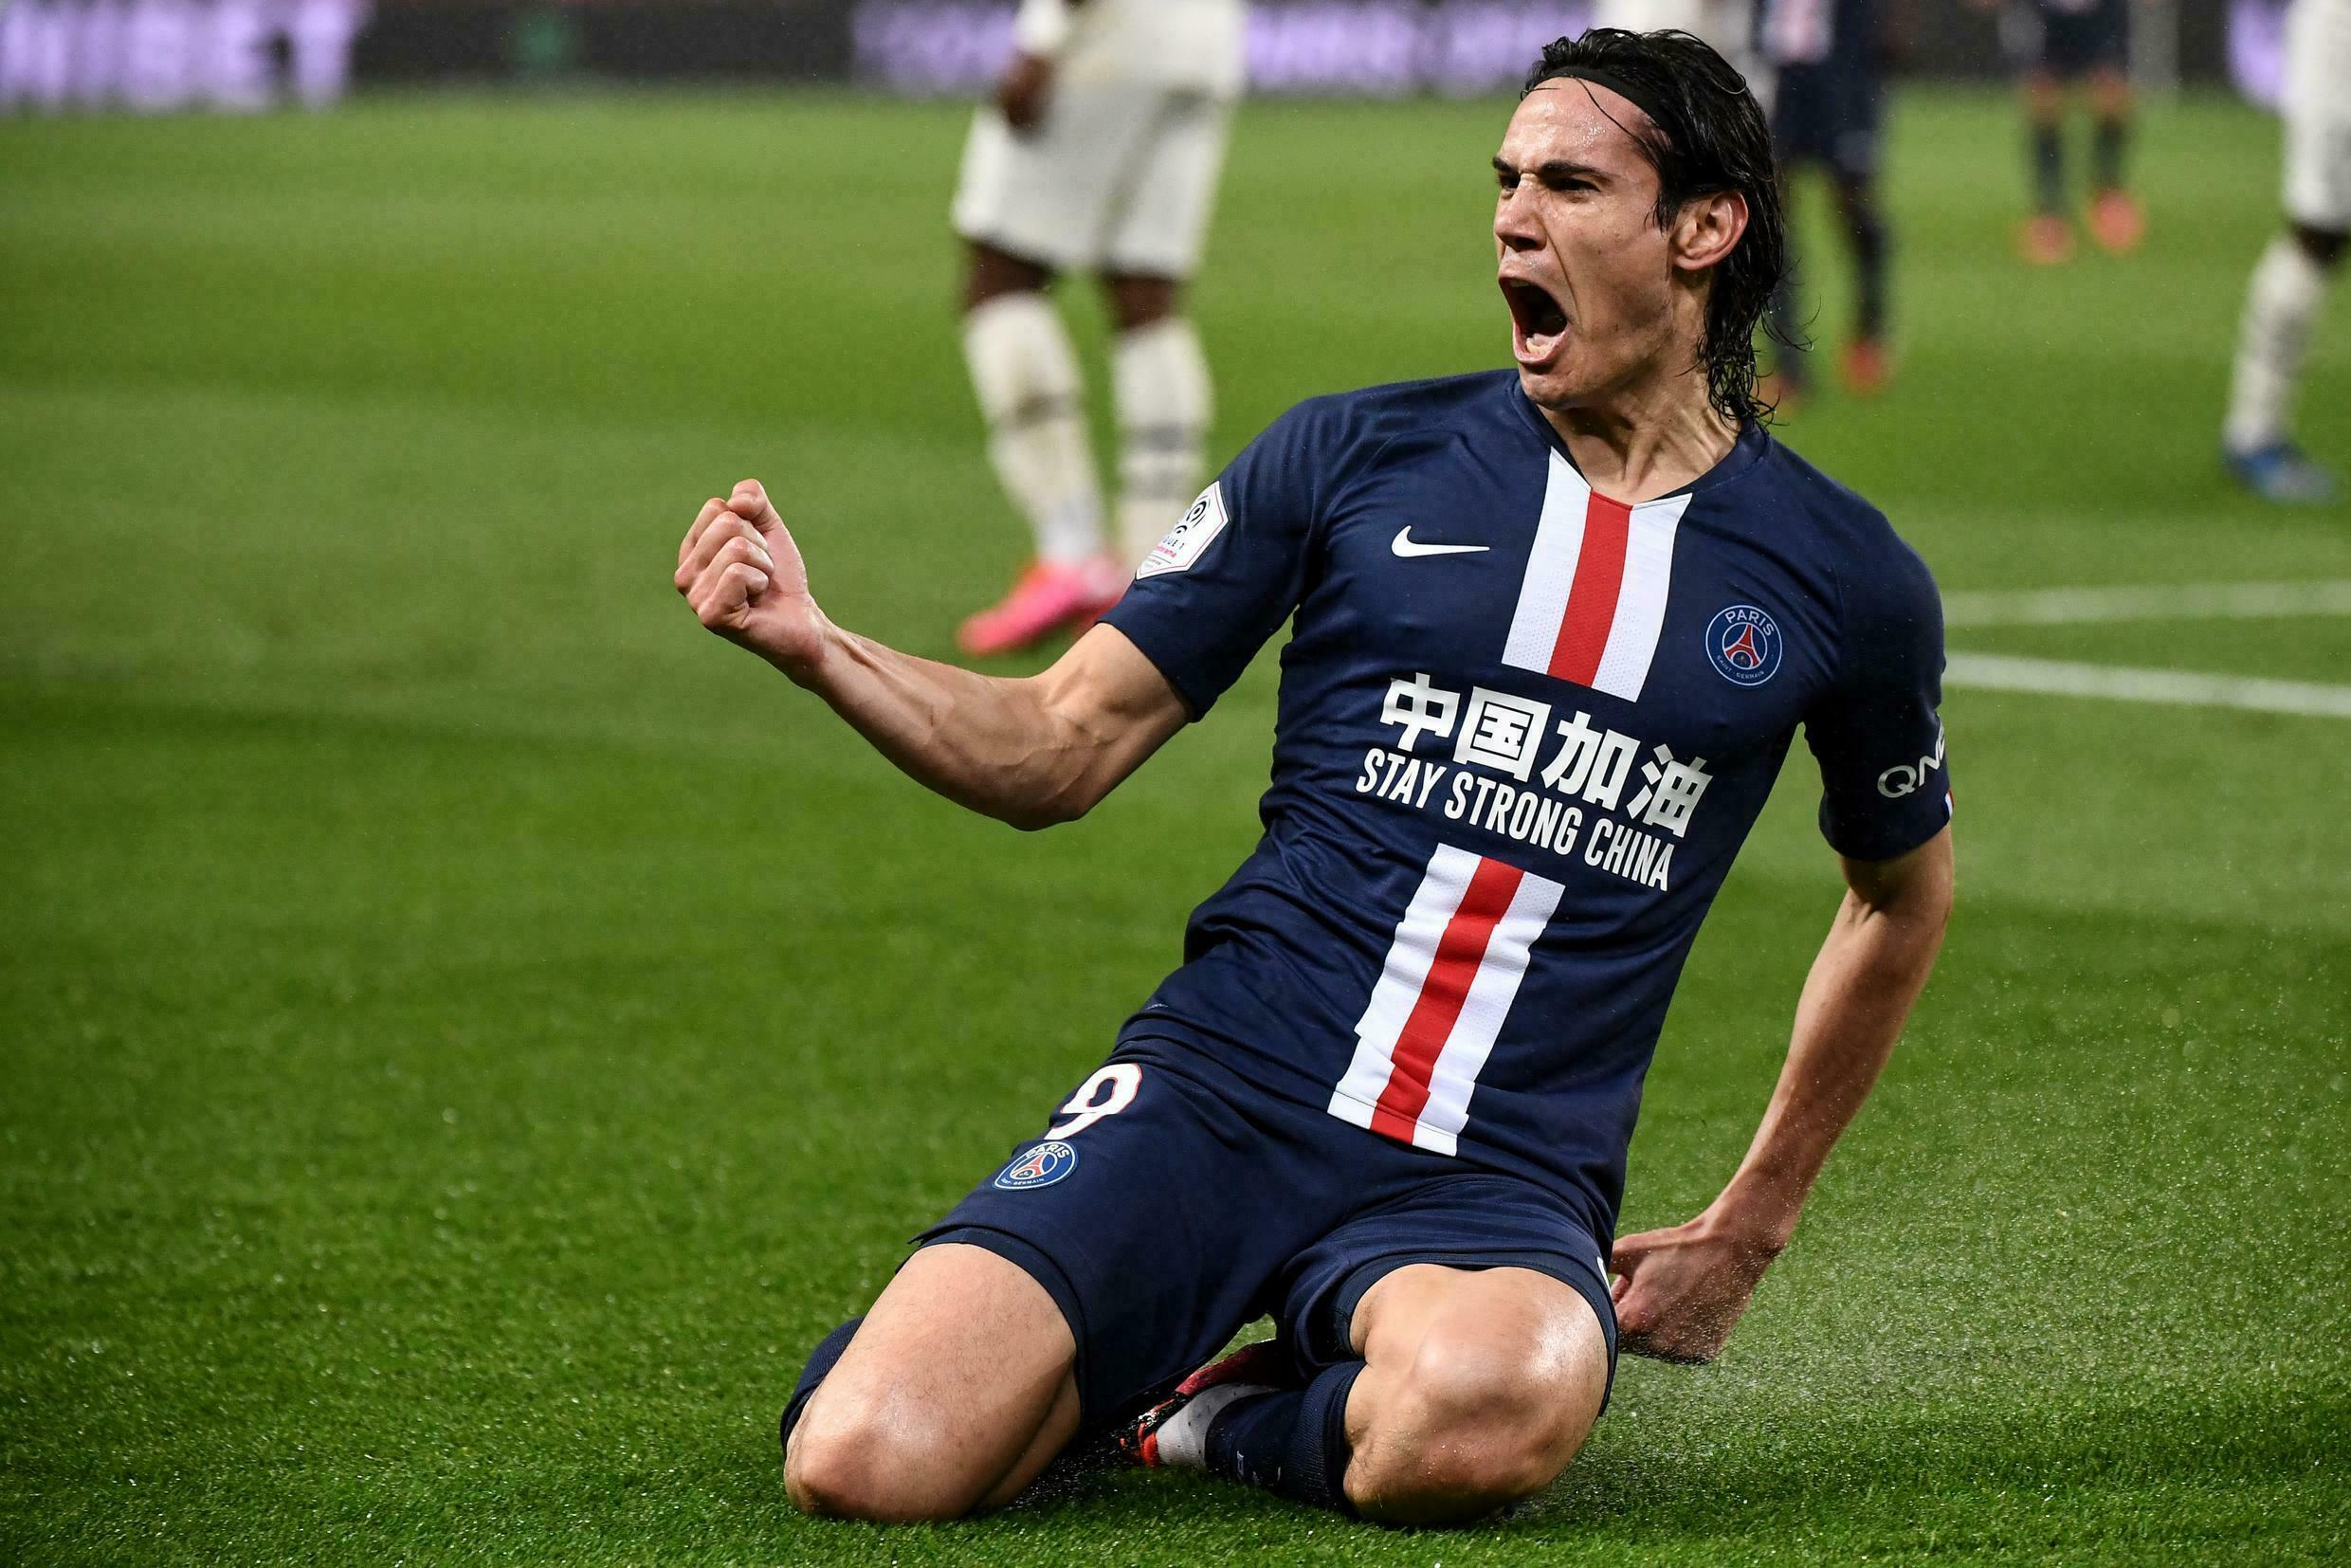 Why PSG 2021 Is The Strongest Team Of The Decade? An Footballing Giant In Making